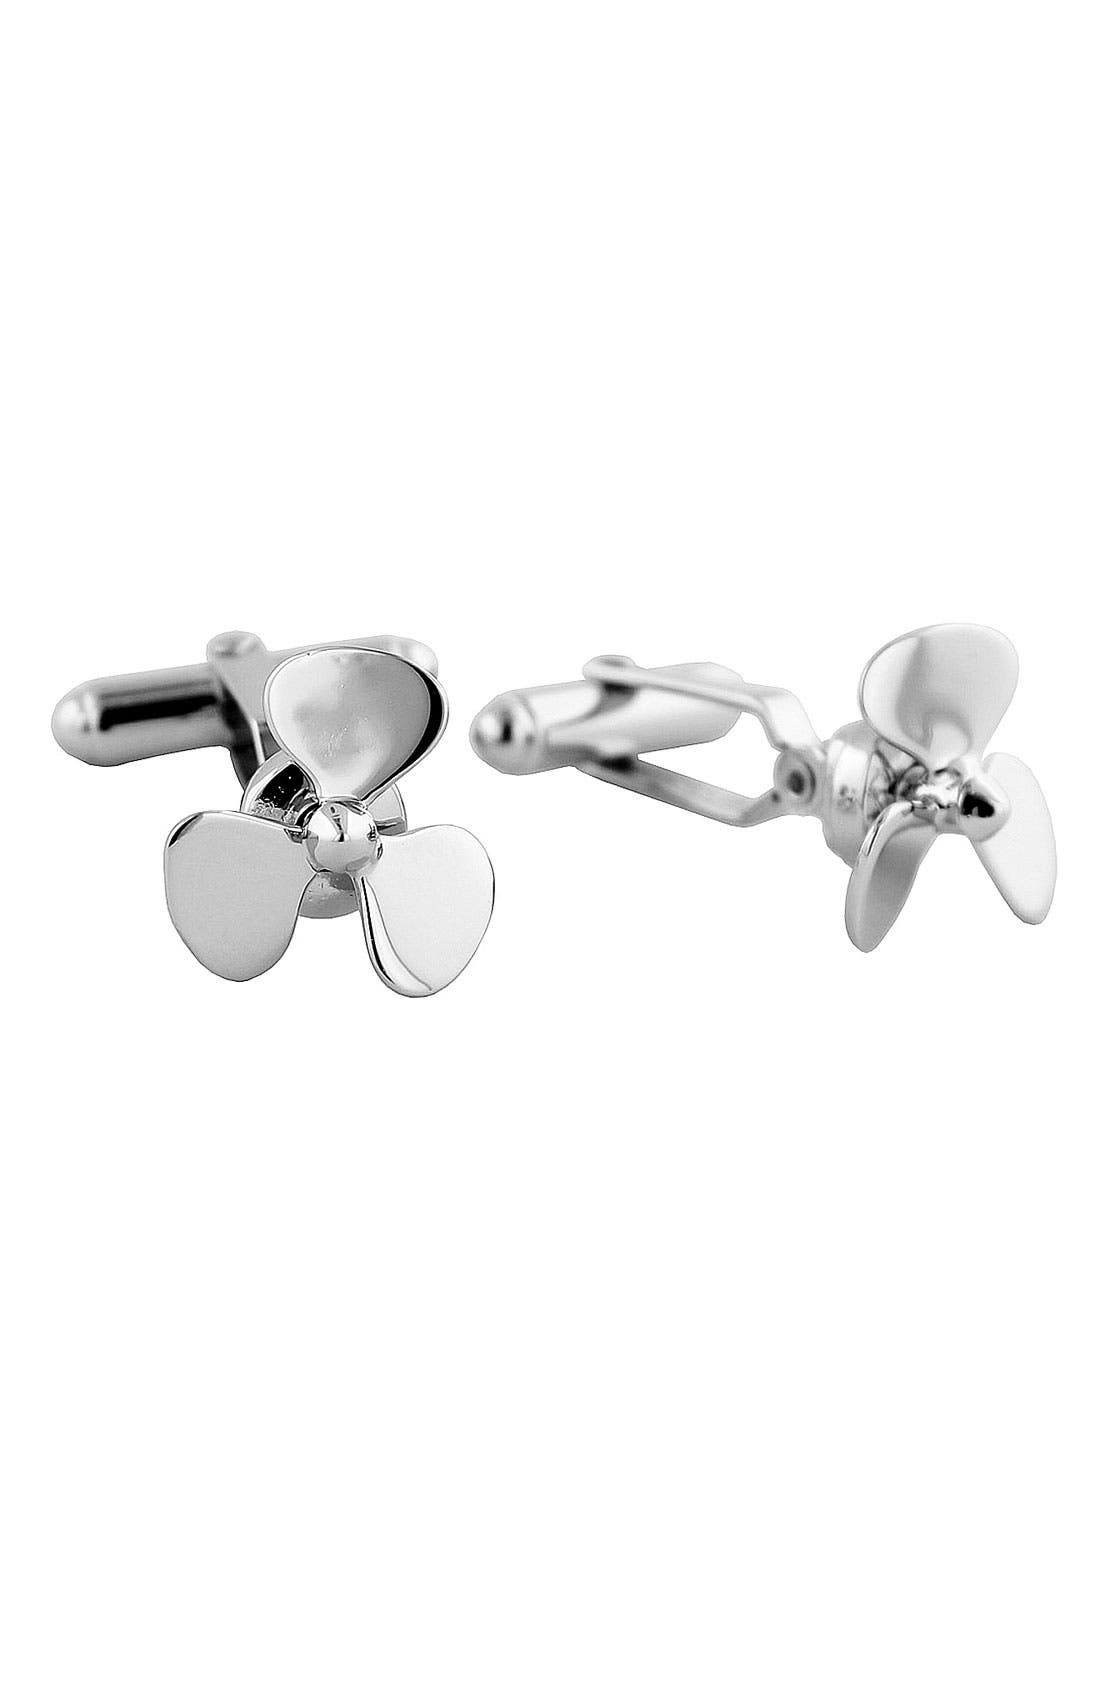 'Propeller' Cuff Links,                             Main thumbnail 1, color,                             Propeller